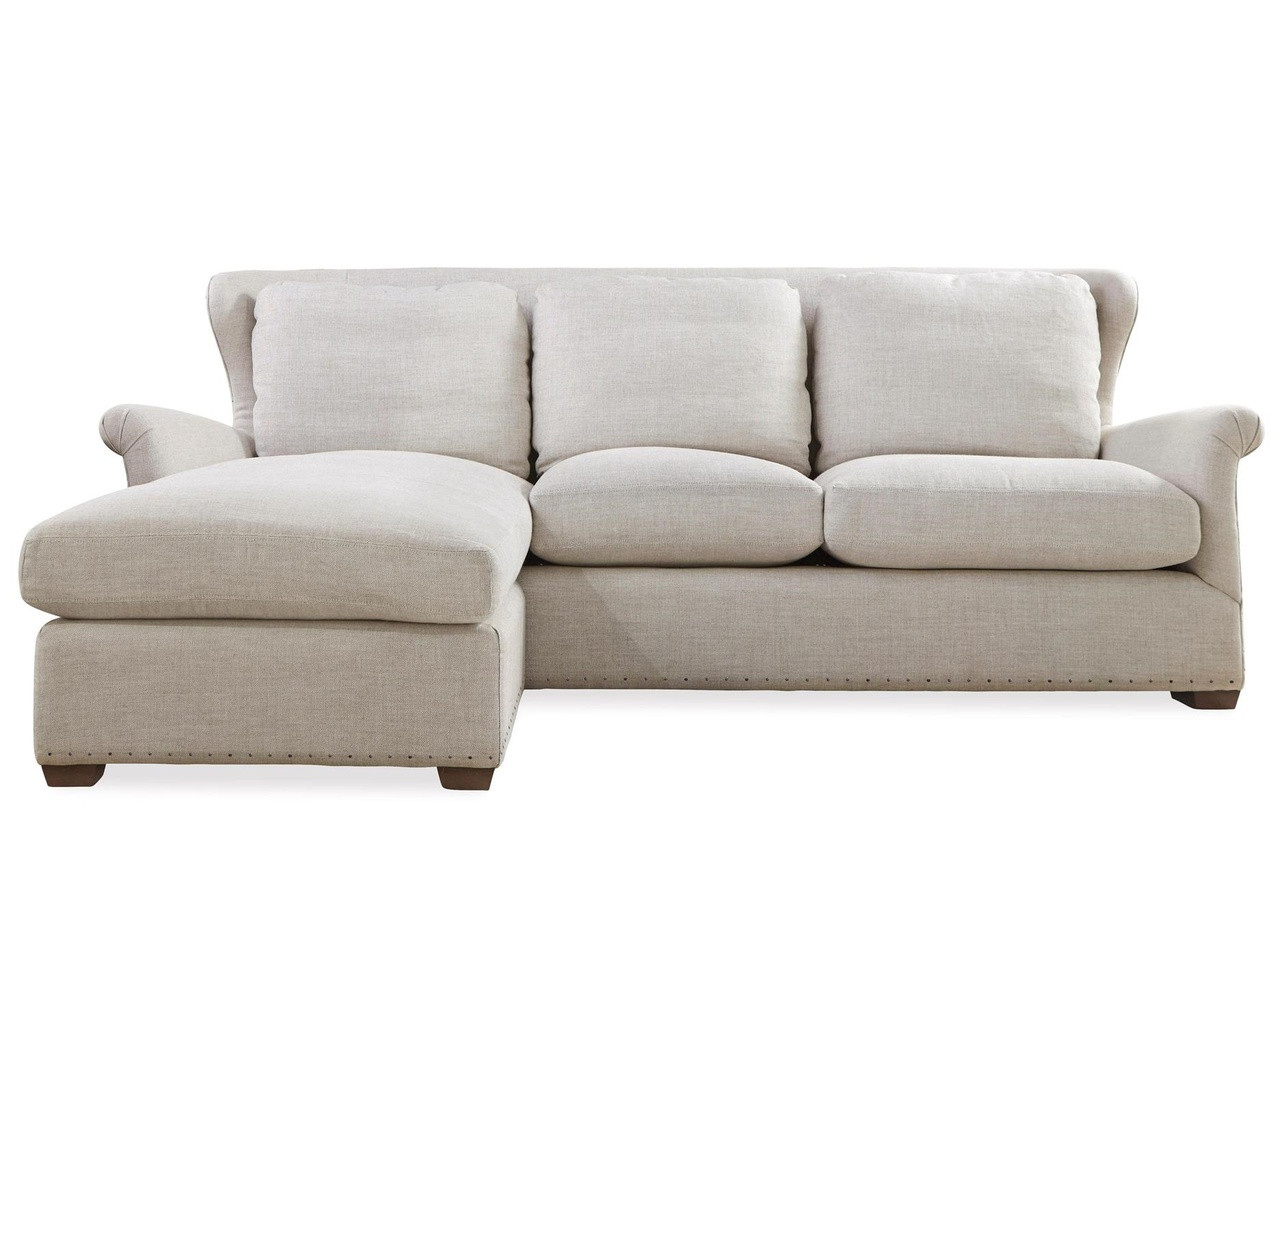 Beautiful Haven Belgian Linen Upholstered Wingback Chaise Sofa Sectional